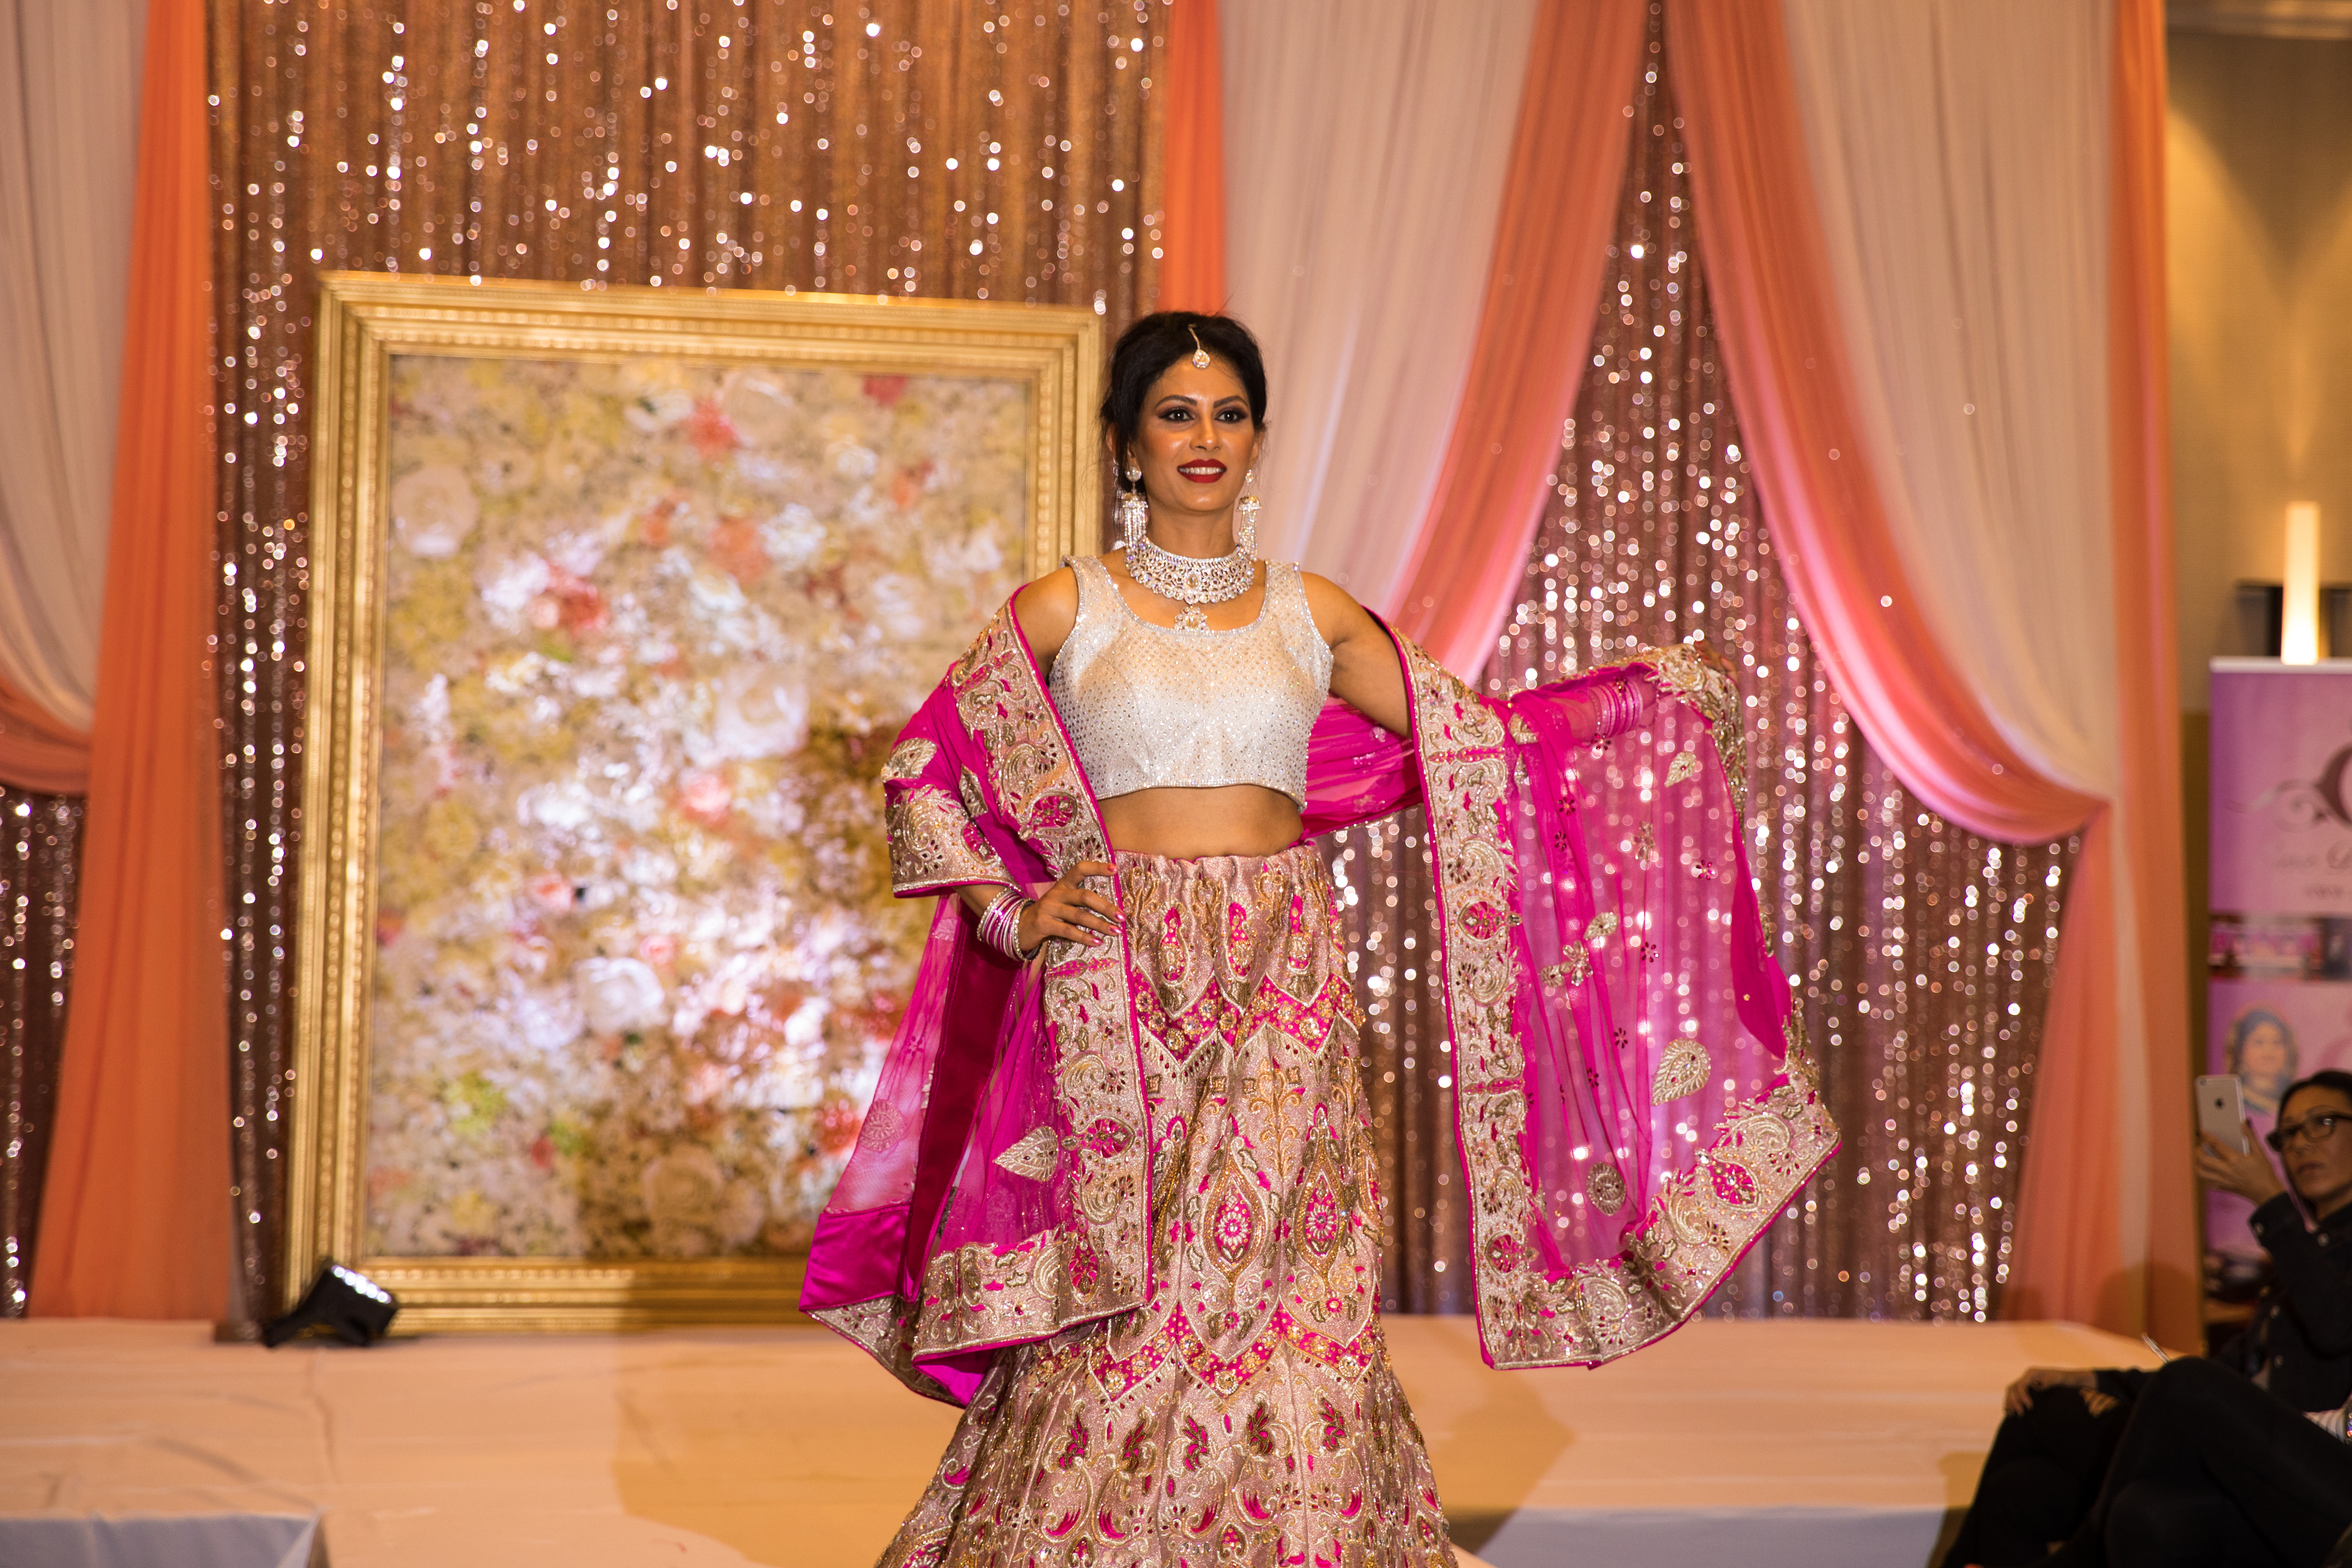 sf-bayarea-indian-wedding-bridal-show-photographer-edcarlogarcia-B35A2169 - Copy